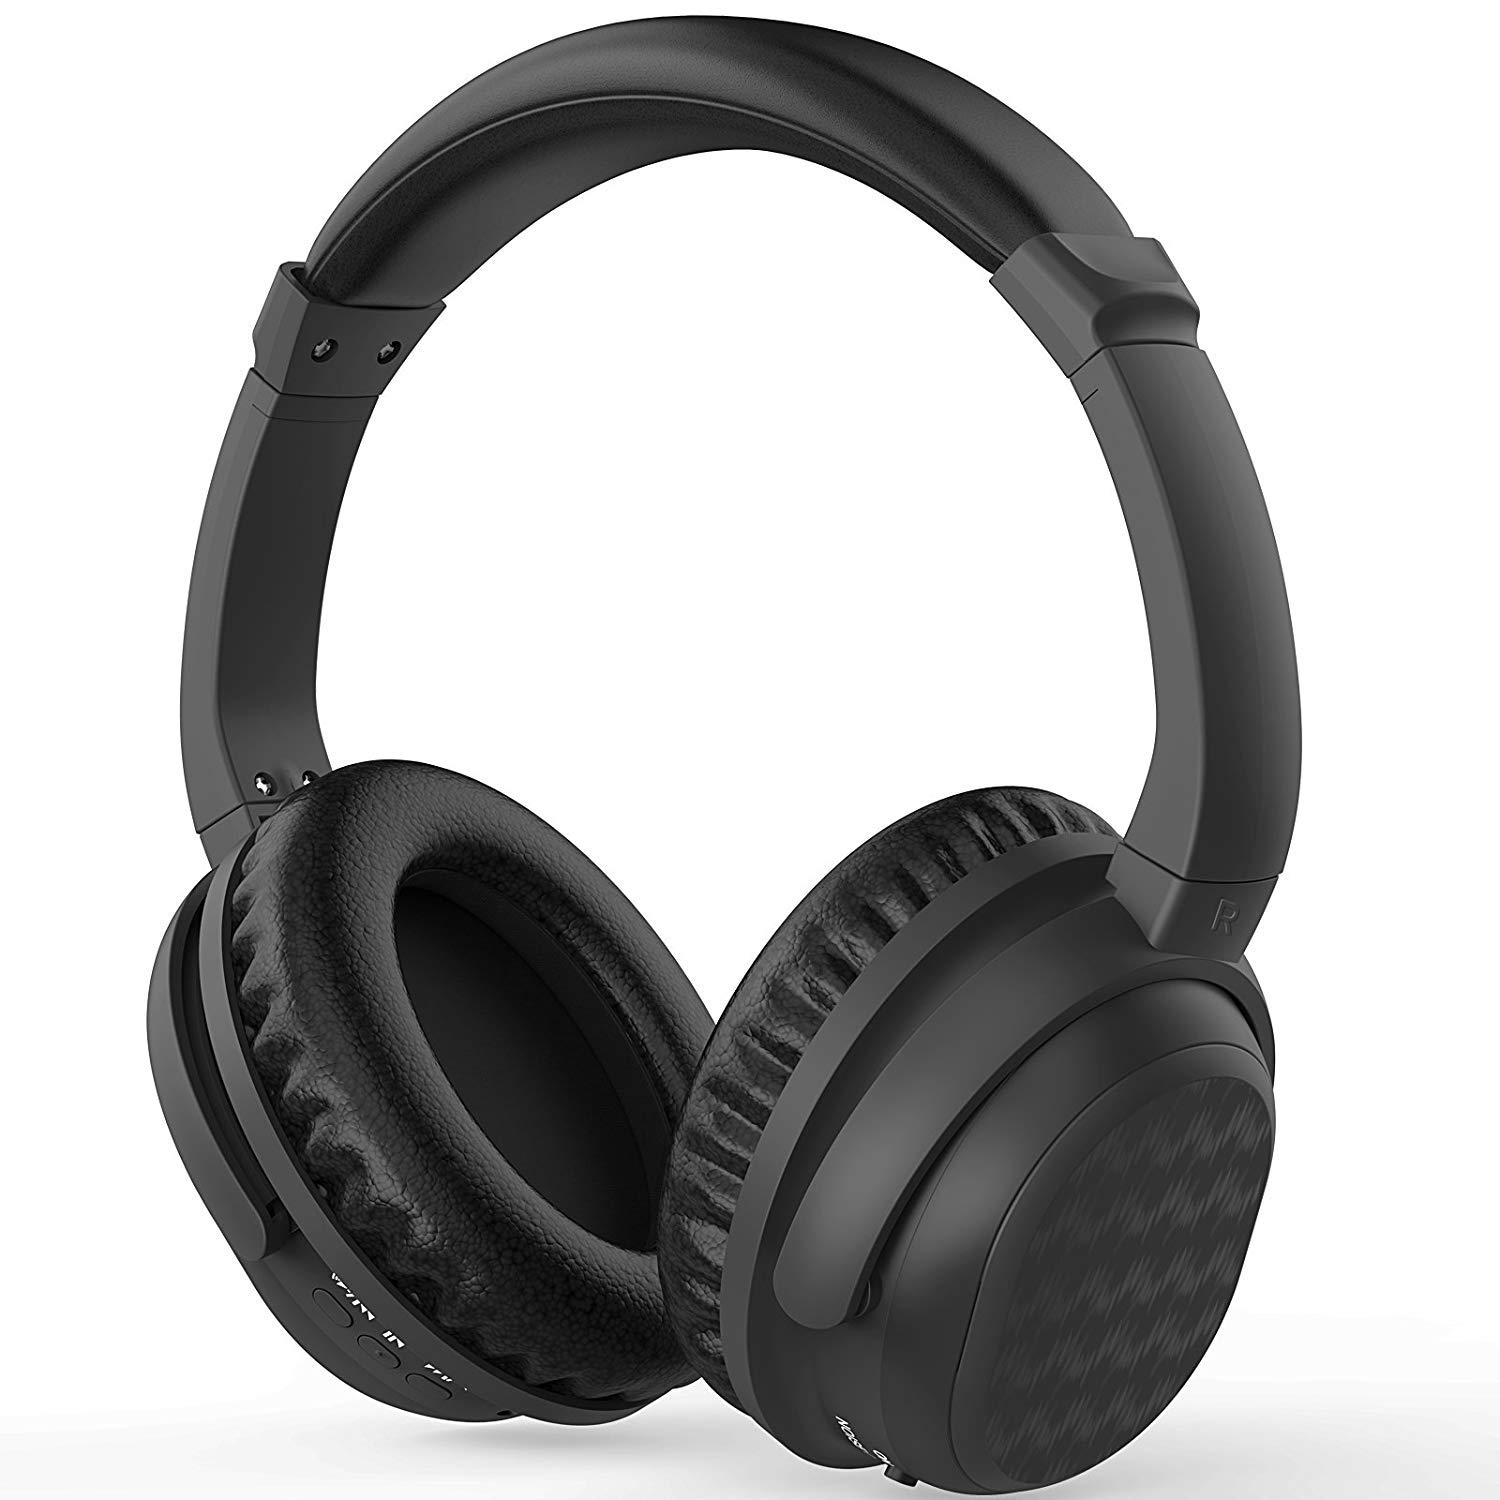 Yakalla Active Noise Cancelling Headphones, Over-Ear Stereo Earphones with Microphone and Volume Control, Quick Charge, Lightweight Foldable Protein Earpads for Travel Work